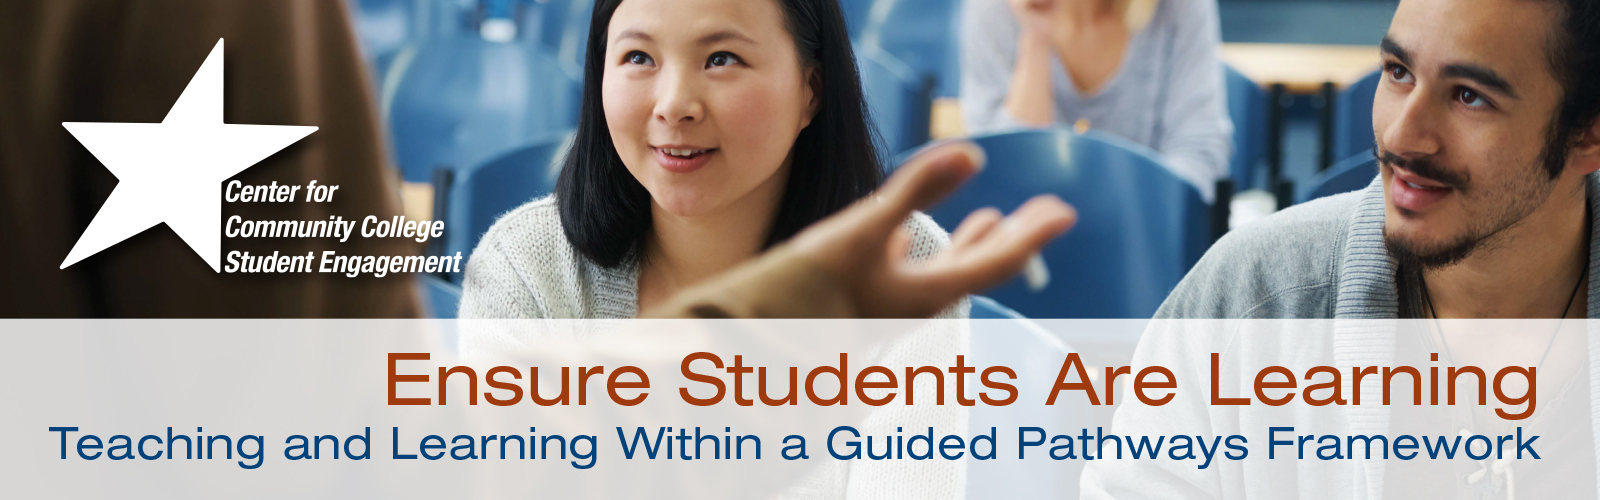 Teaching and Learning within Guided Pathways Banner